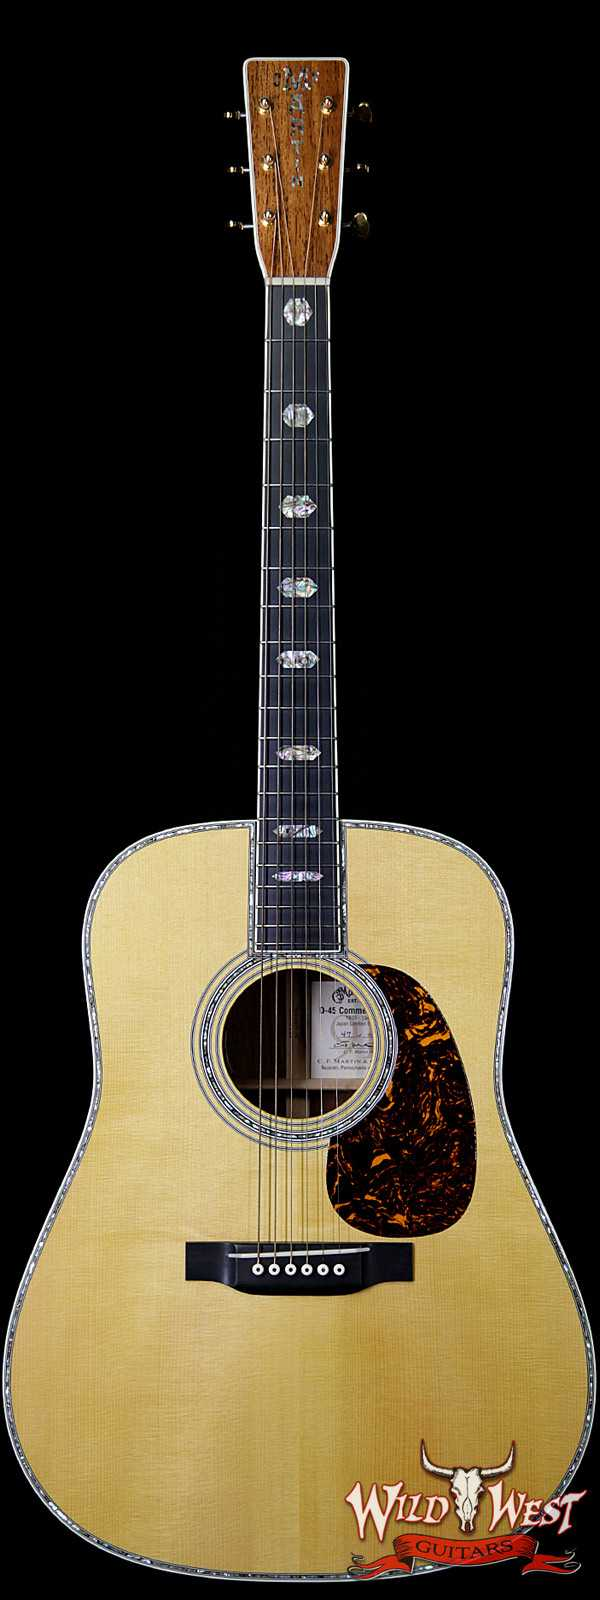 2013 Martin Limited Edition D-45 Commemorative #47 of 91 Adirondack Spruce with Madagascar Rosewood Electric-Acoustic